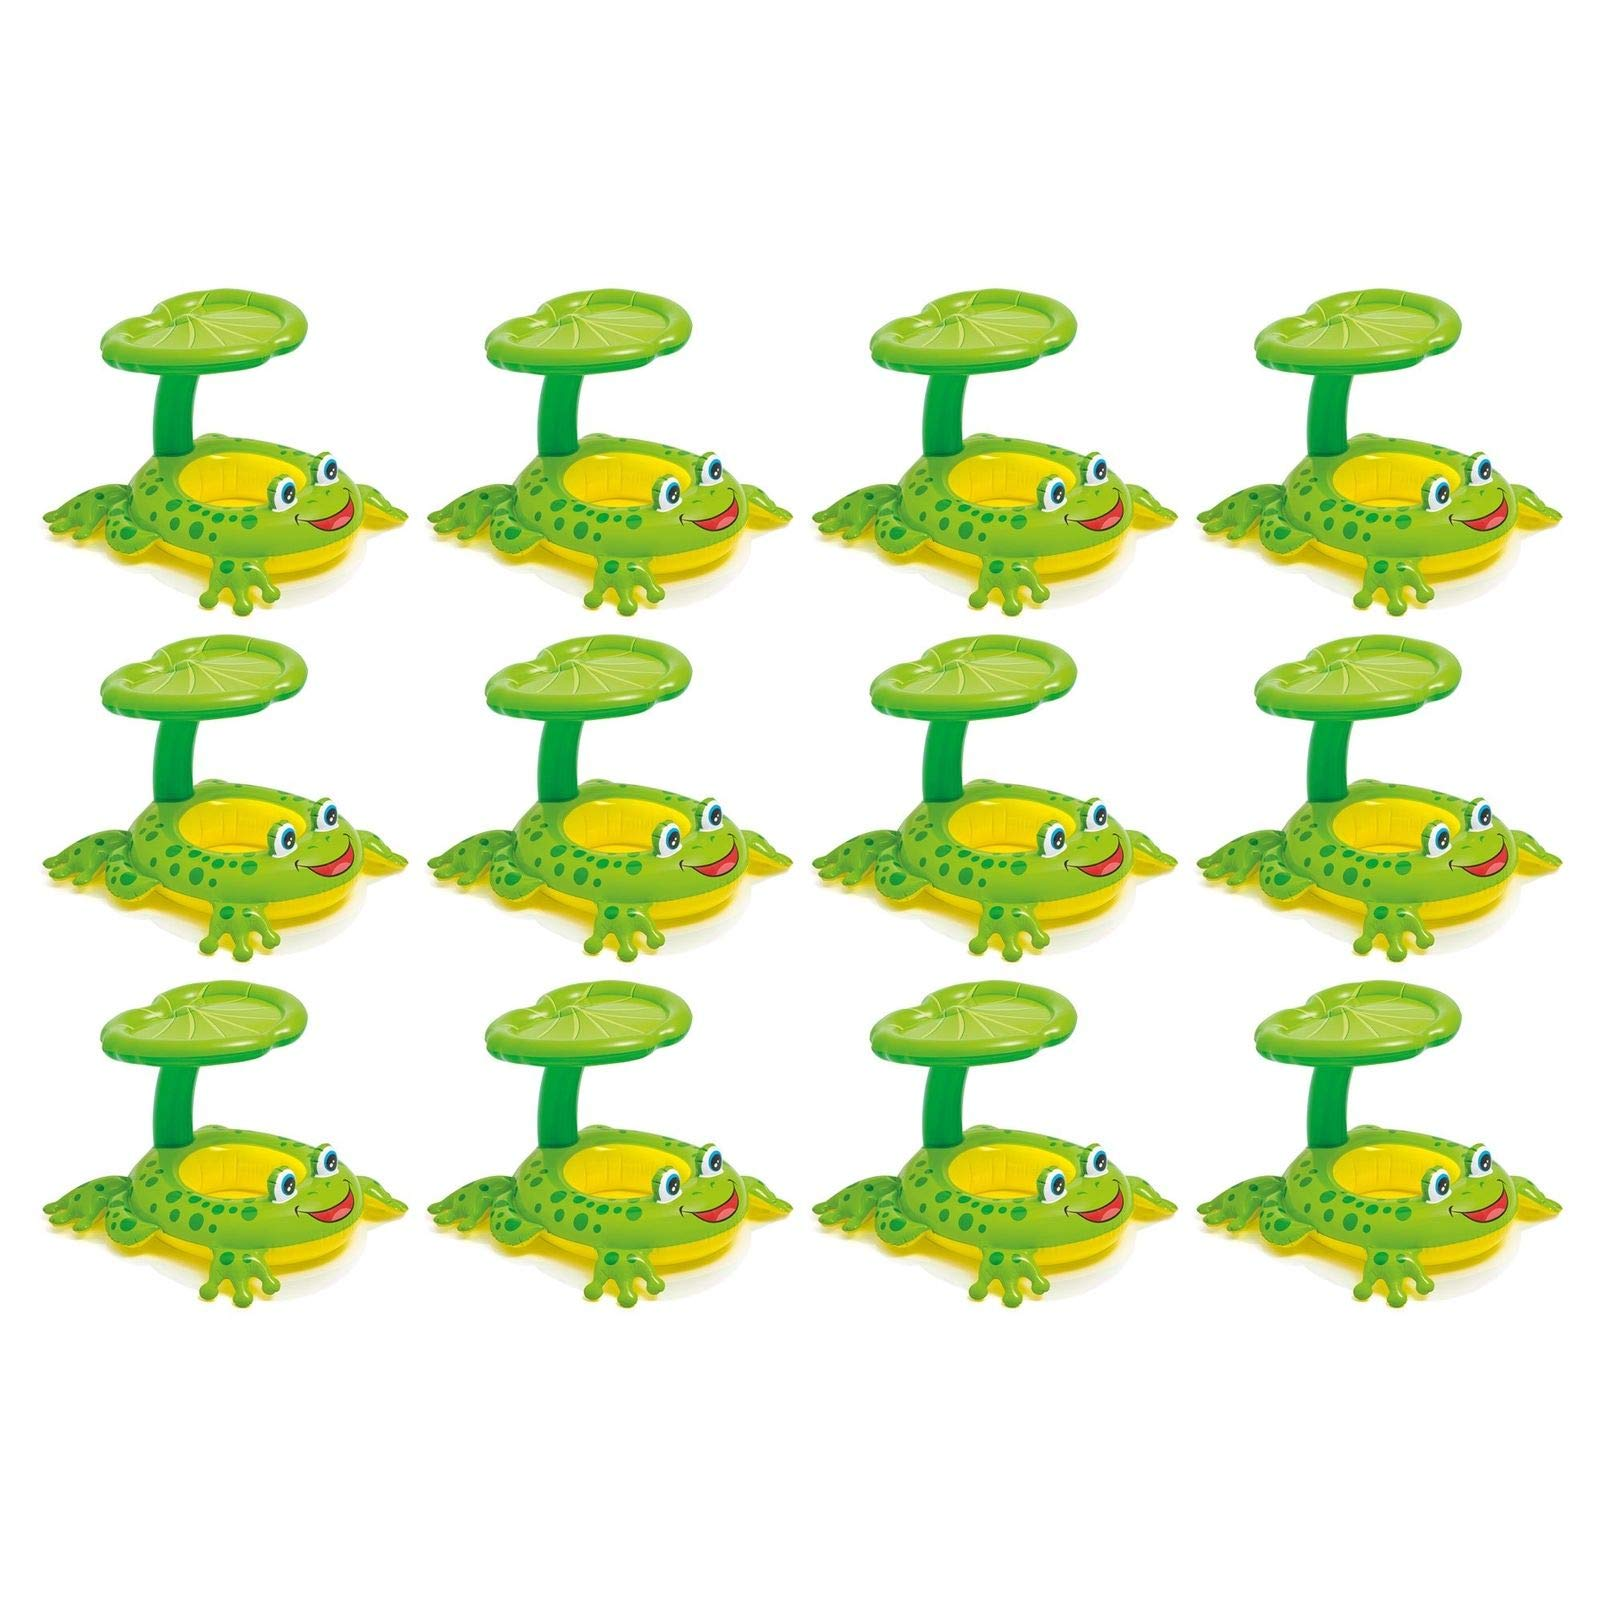 MRT SUPPLY Froggy Friend Shade Canopy Baby Kiddie Floating Raft (12 Pack) with Ebook